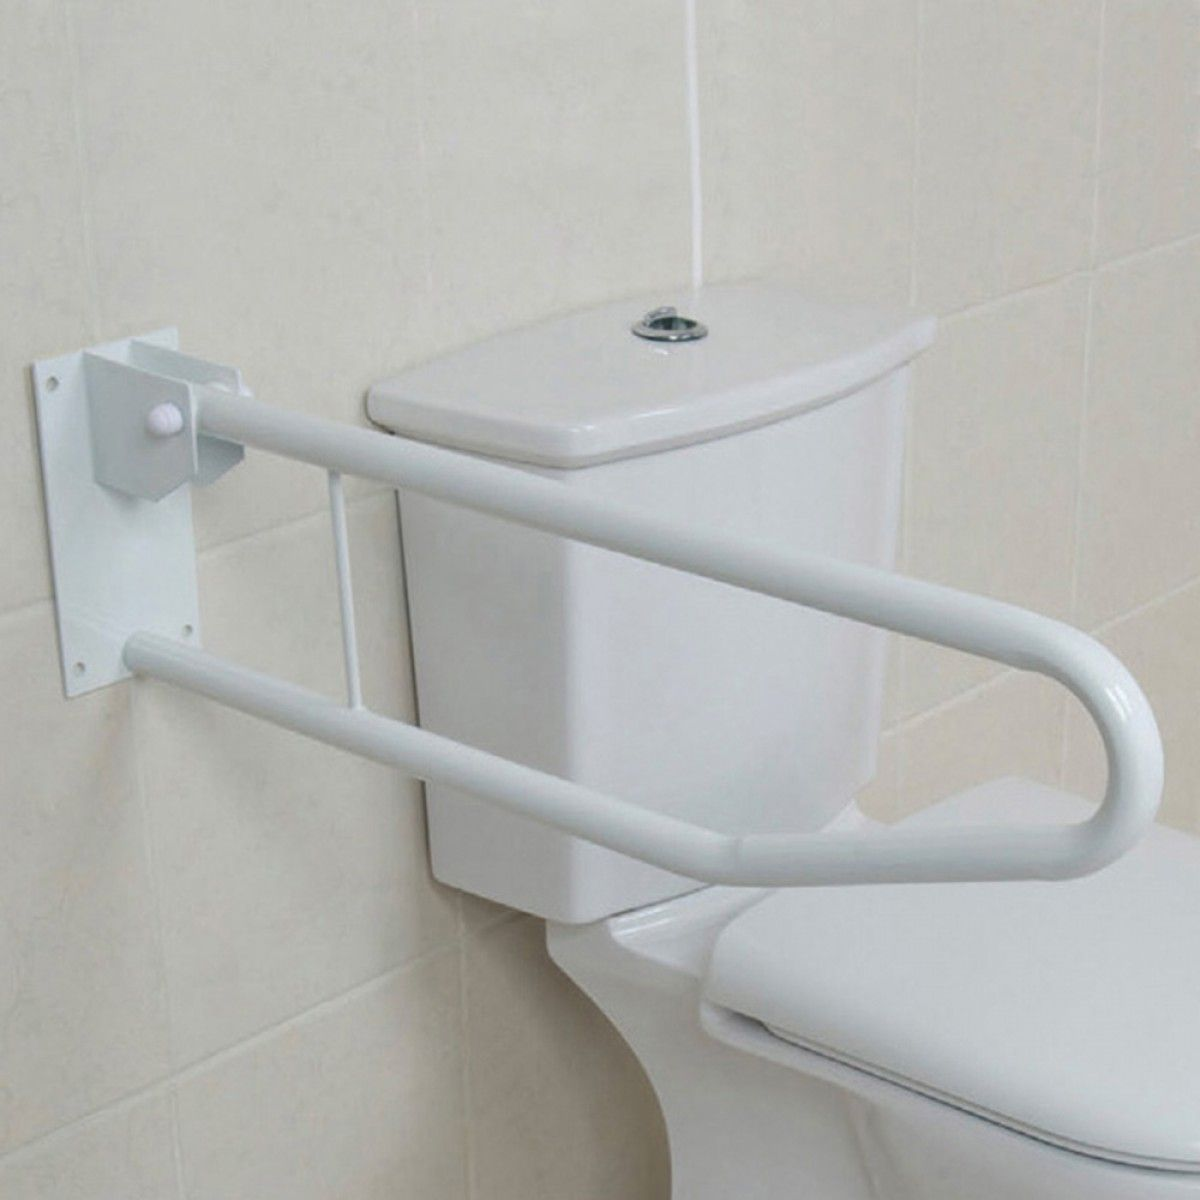 Pin by BestShowerChairs.com on Toilet Safety Rails | Pinterest ...